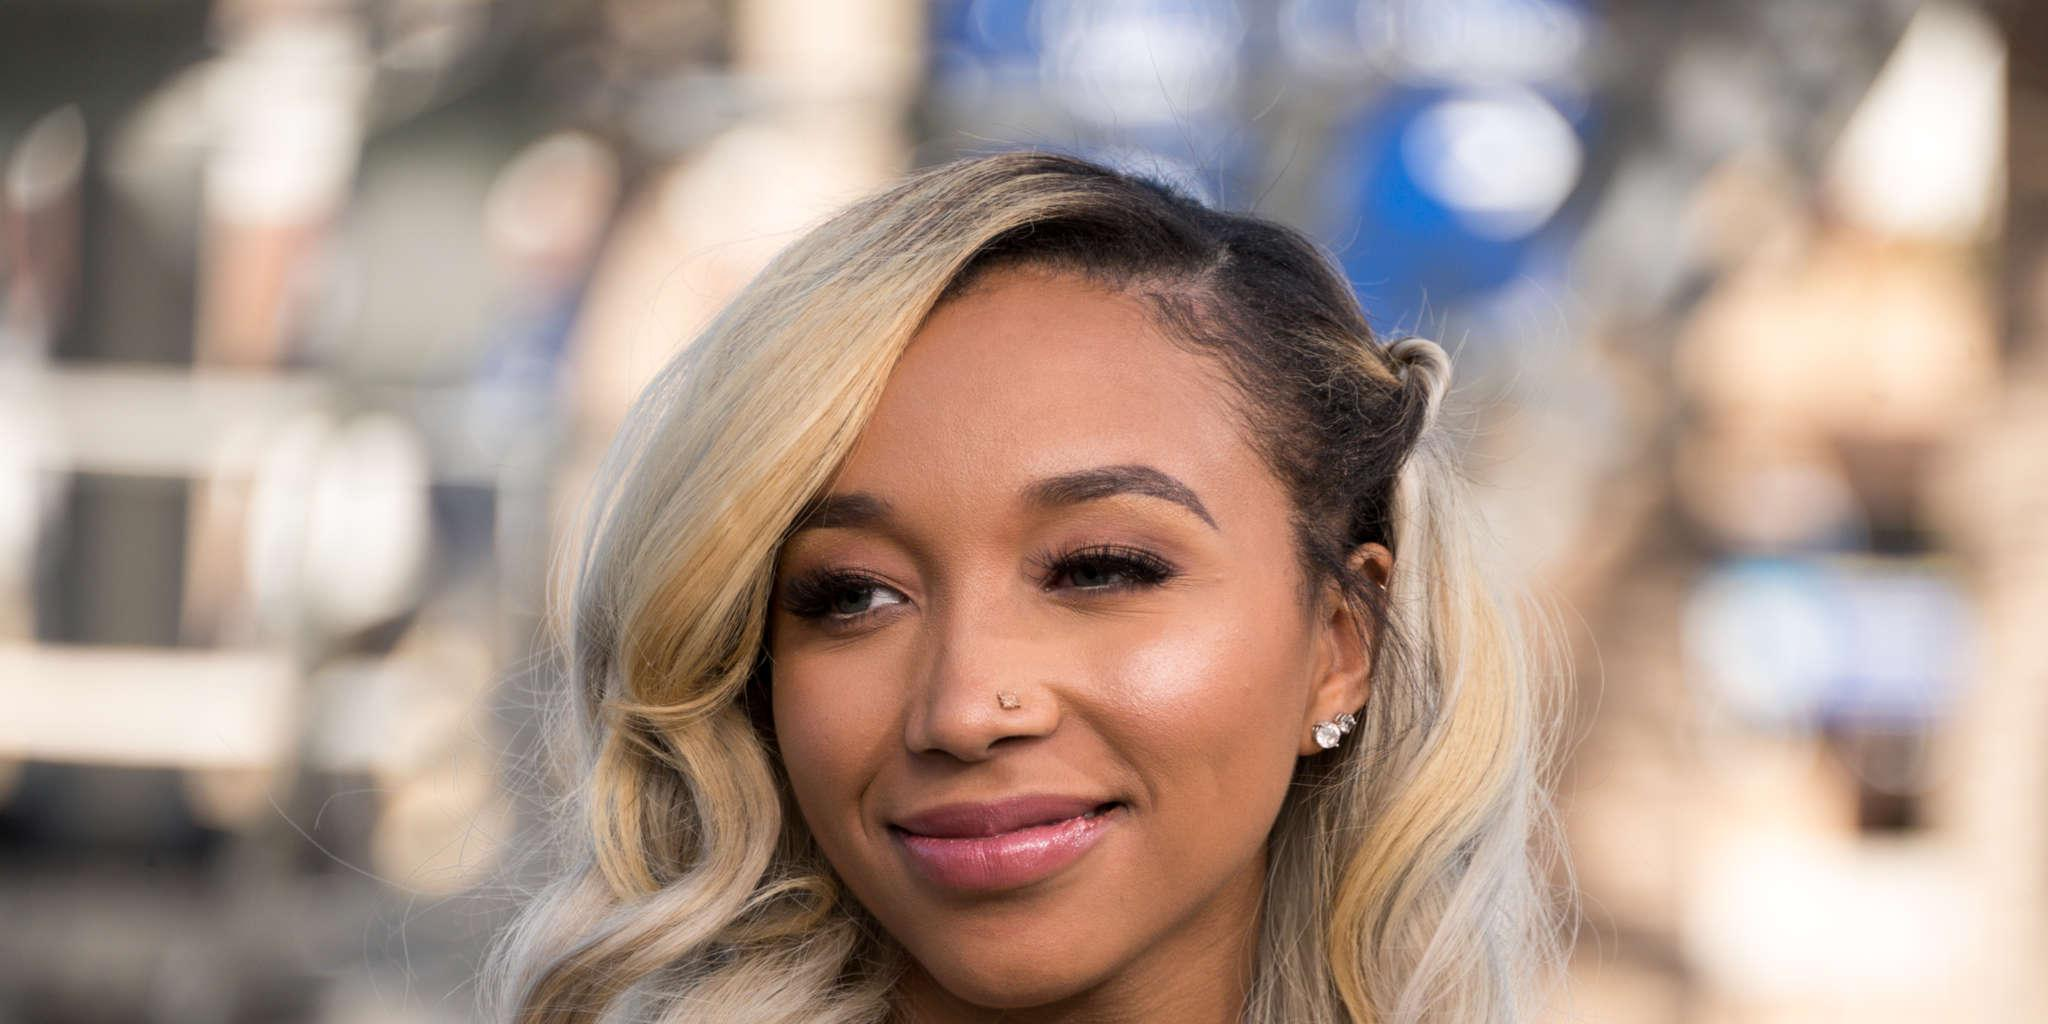 Tiny Harris' Daughter, Zonnique Pullins, Reveals The Main Reason For Which Fans Can See Her On Instagram